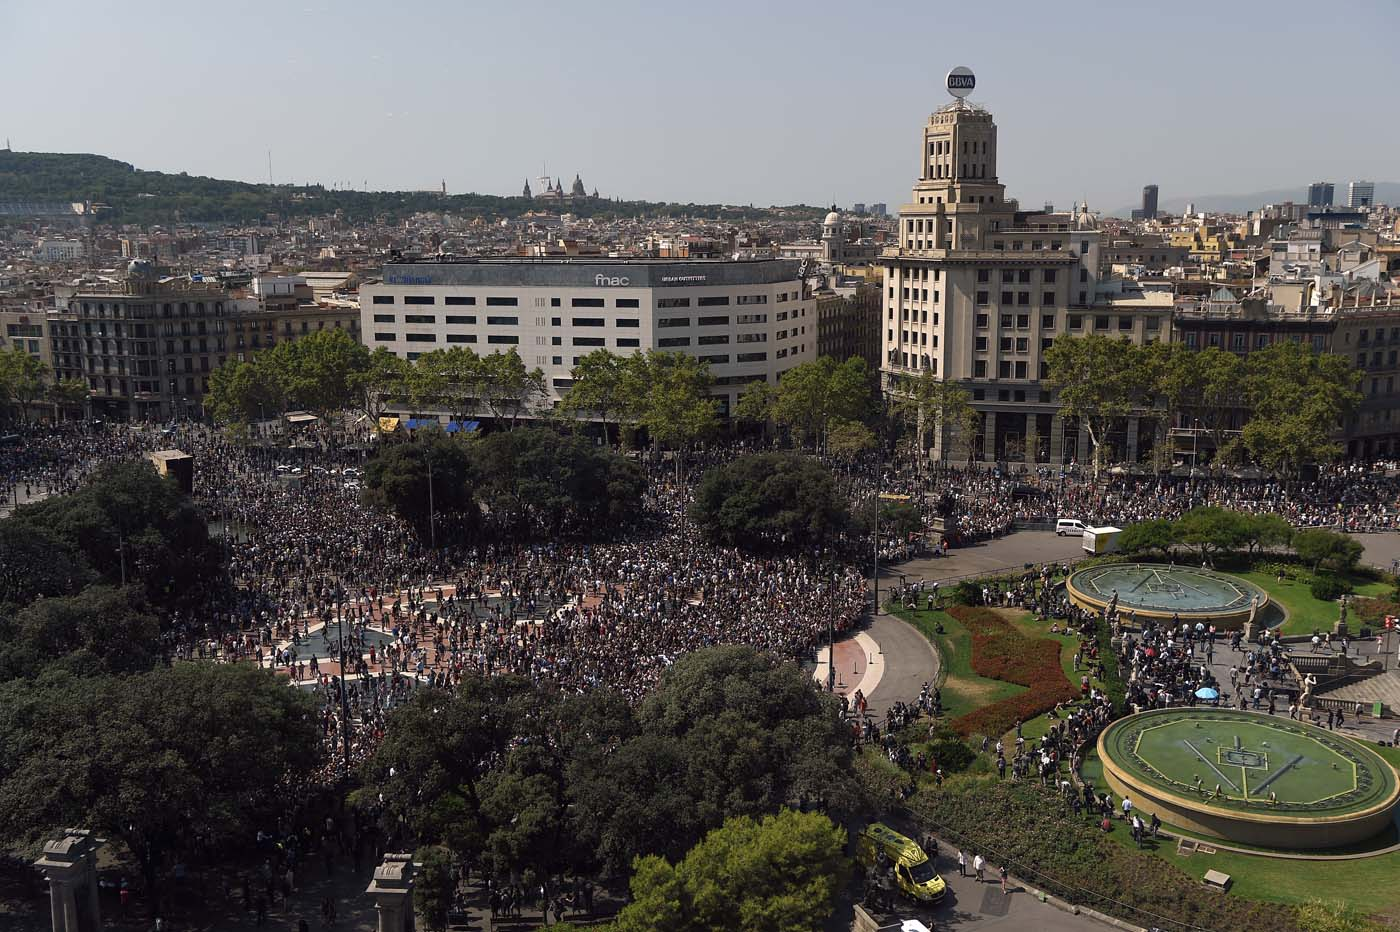 People leave the Plaza de Catalunya after observing a minute of silence for the victims of the Barcelona attack on August 18, 2017, a day after a van ploughed into the crowd, killing 13 persons and injuring over 100 on the Rambla in Barcelona. Drivers have ploughed on August 17, 2017 into pedestrians in two quick-succession, separate attacks in Barcelona and another popular Spanish seaside city, leaving 13 people dead and injuring more than 100 others. In the first incident, which was claimed by the Islamic State group, a white van sped into a street packed full of tourists in central Barcelona on Thursday afternoon, knocking people out of the way and killing 13 in a scene of chaos and horror. Some eight hours later in Cambrils, a city 120 kilometres south of Barcelona, an Audi A3 car rammed into pedestrians, injuring six civilians -- one of them critical -- and a police officer, authorities said. / AFP PHOTO / LLUIS GENE